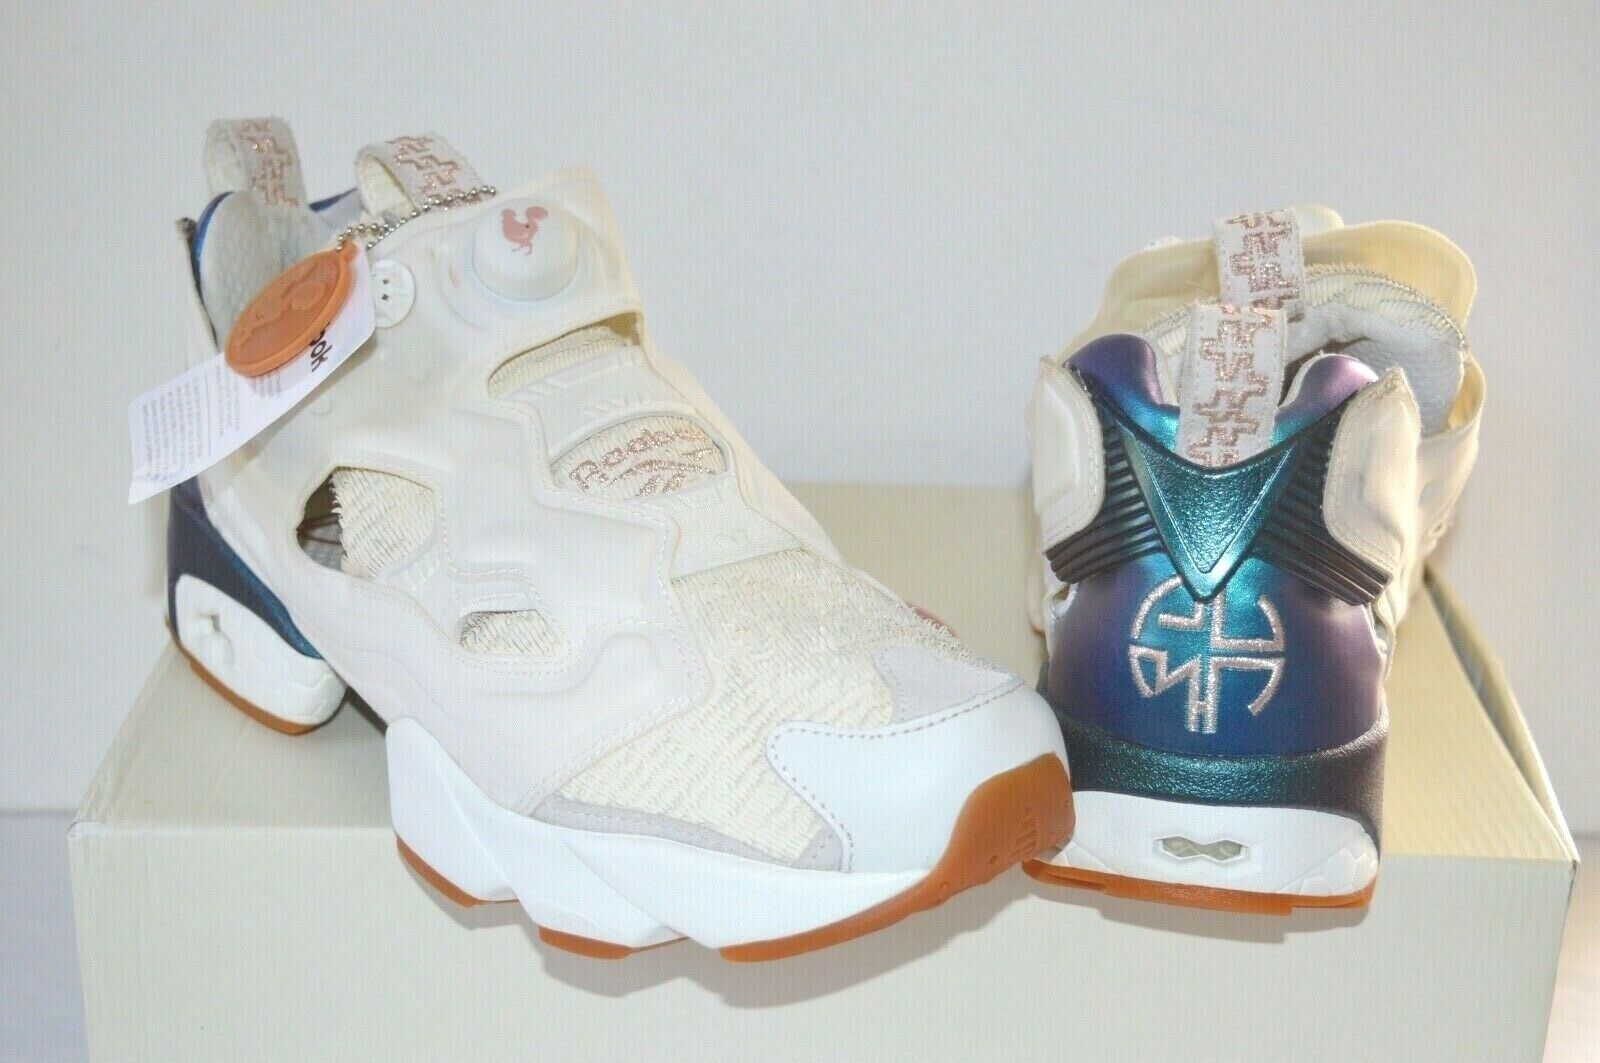 New  Reebok Instapump Pump Fury CNY17 Chalk White pink Year of the Rooster